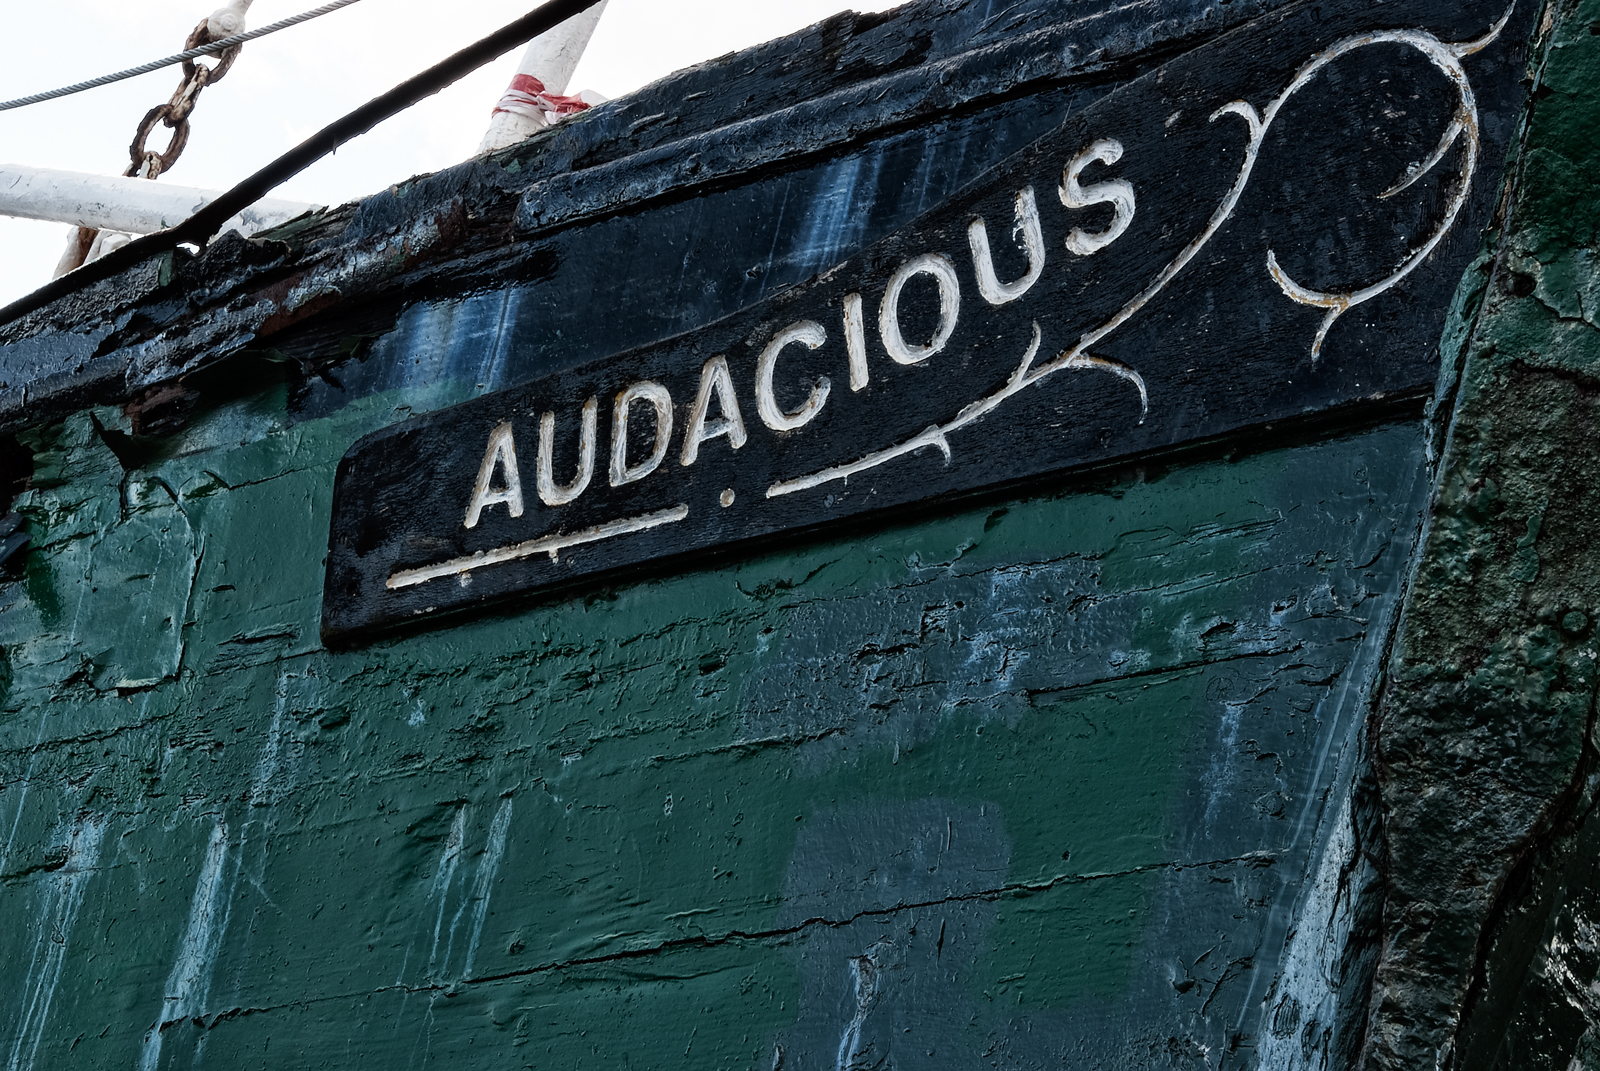 Audacious, Carrickfergus Harbour August 2013